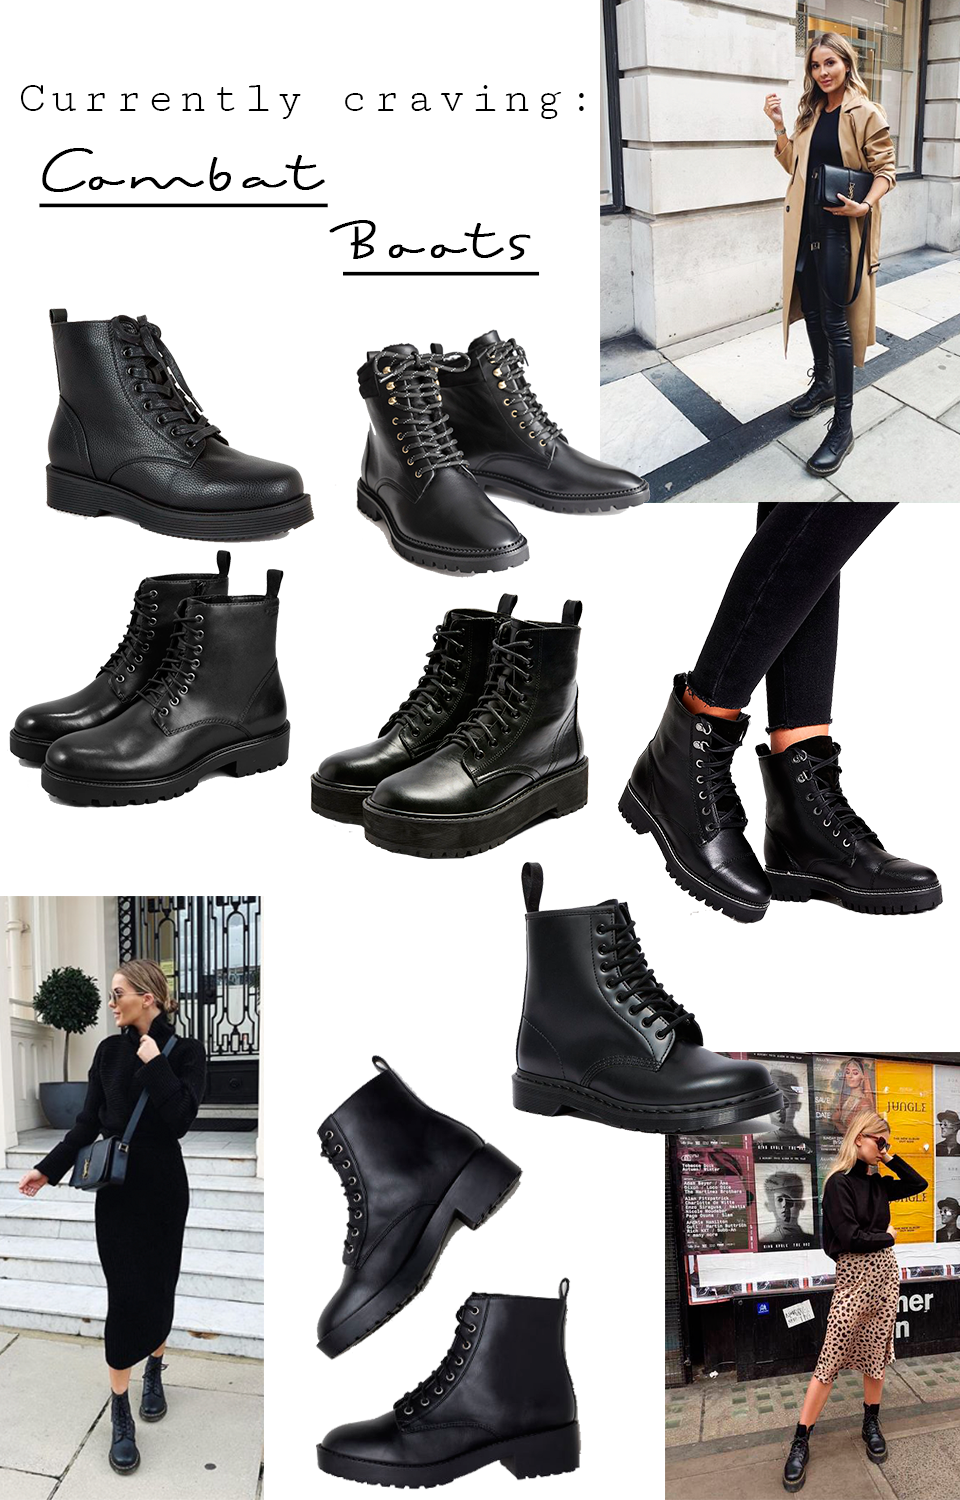 Lace up combat boots for autumn/winter 2019 - Nyörelliset mustat maiharit, syksy/talvi 2019